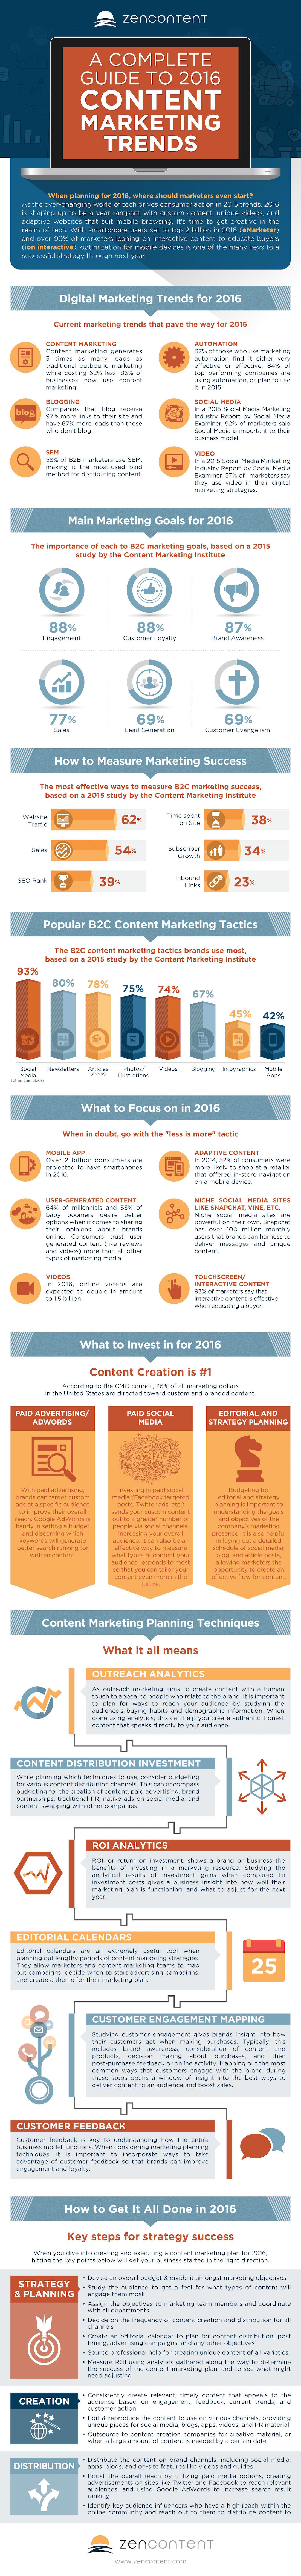 New infographic reveals content marketing budgets, benchmarks and the key trends for 2016